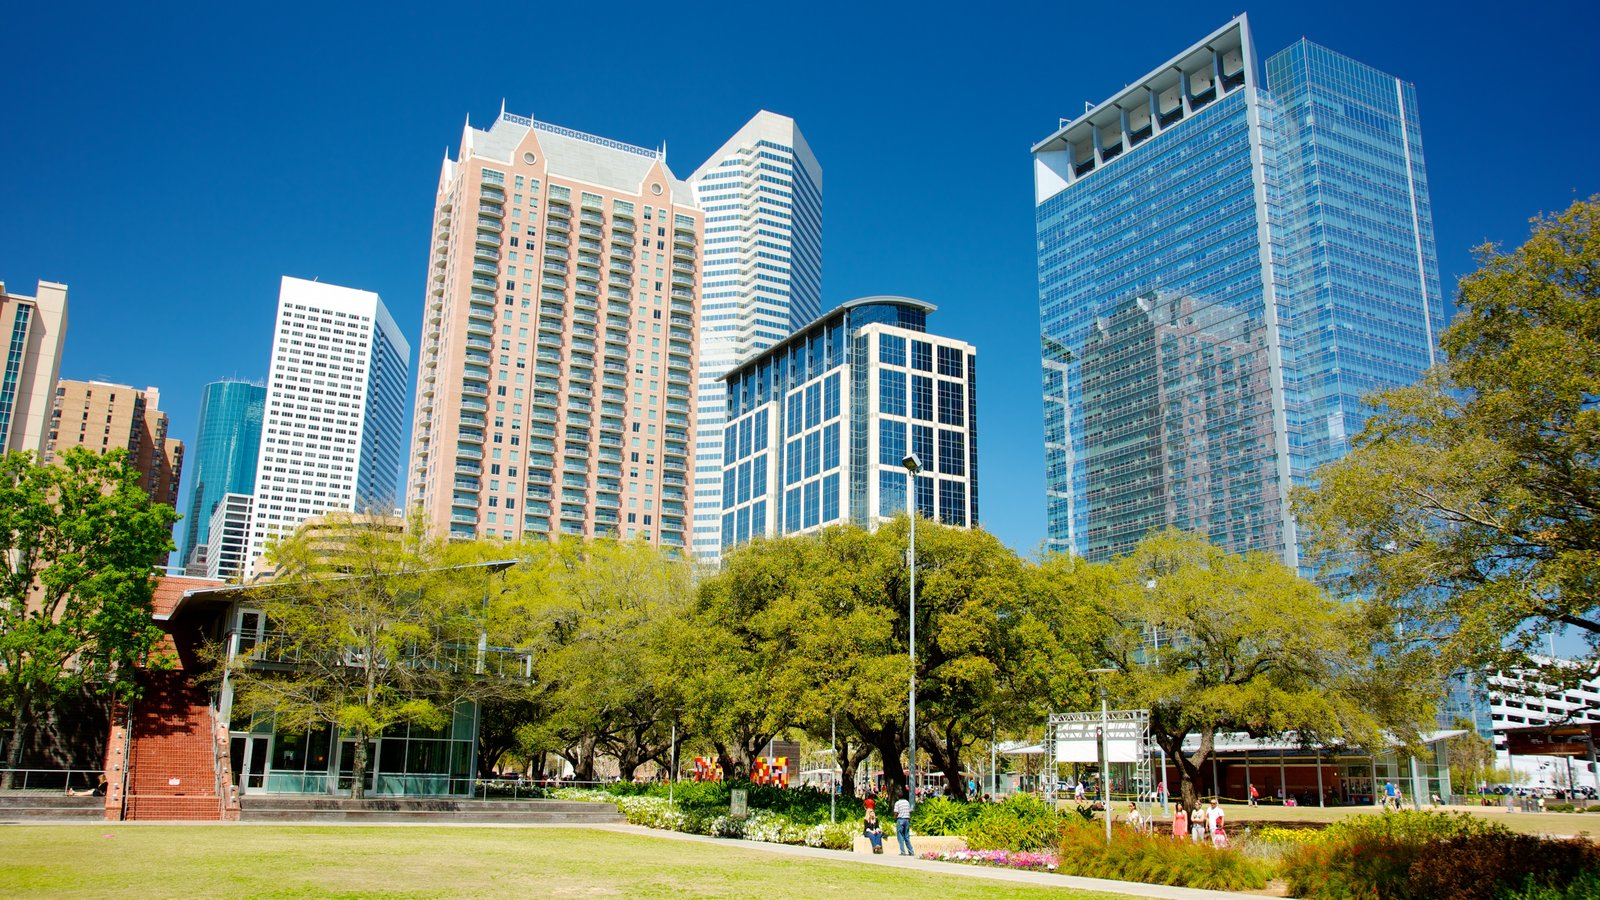 Discovery Green showing a high rise building, a garden and street scenes